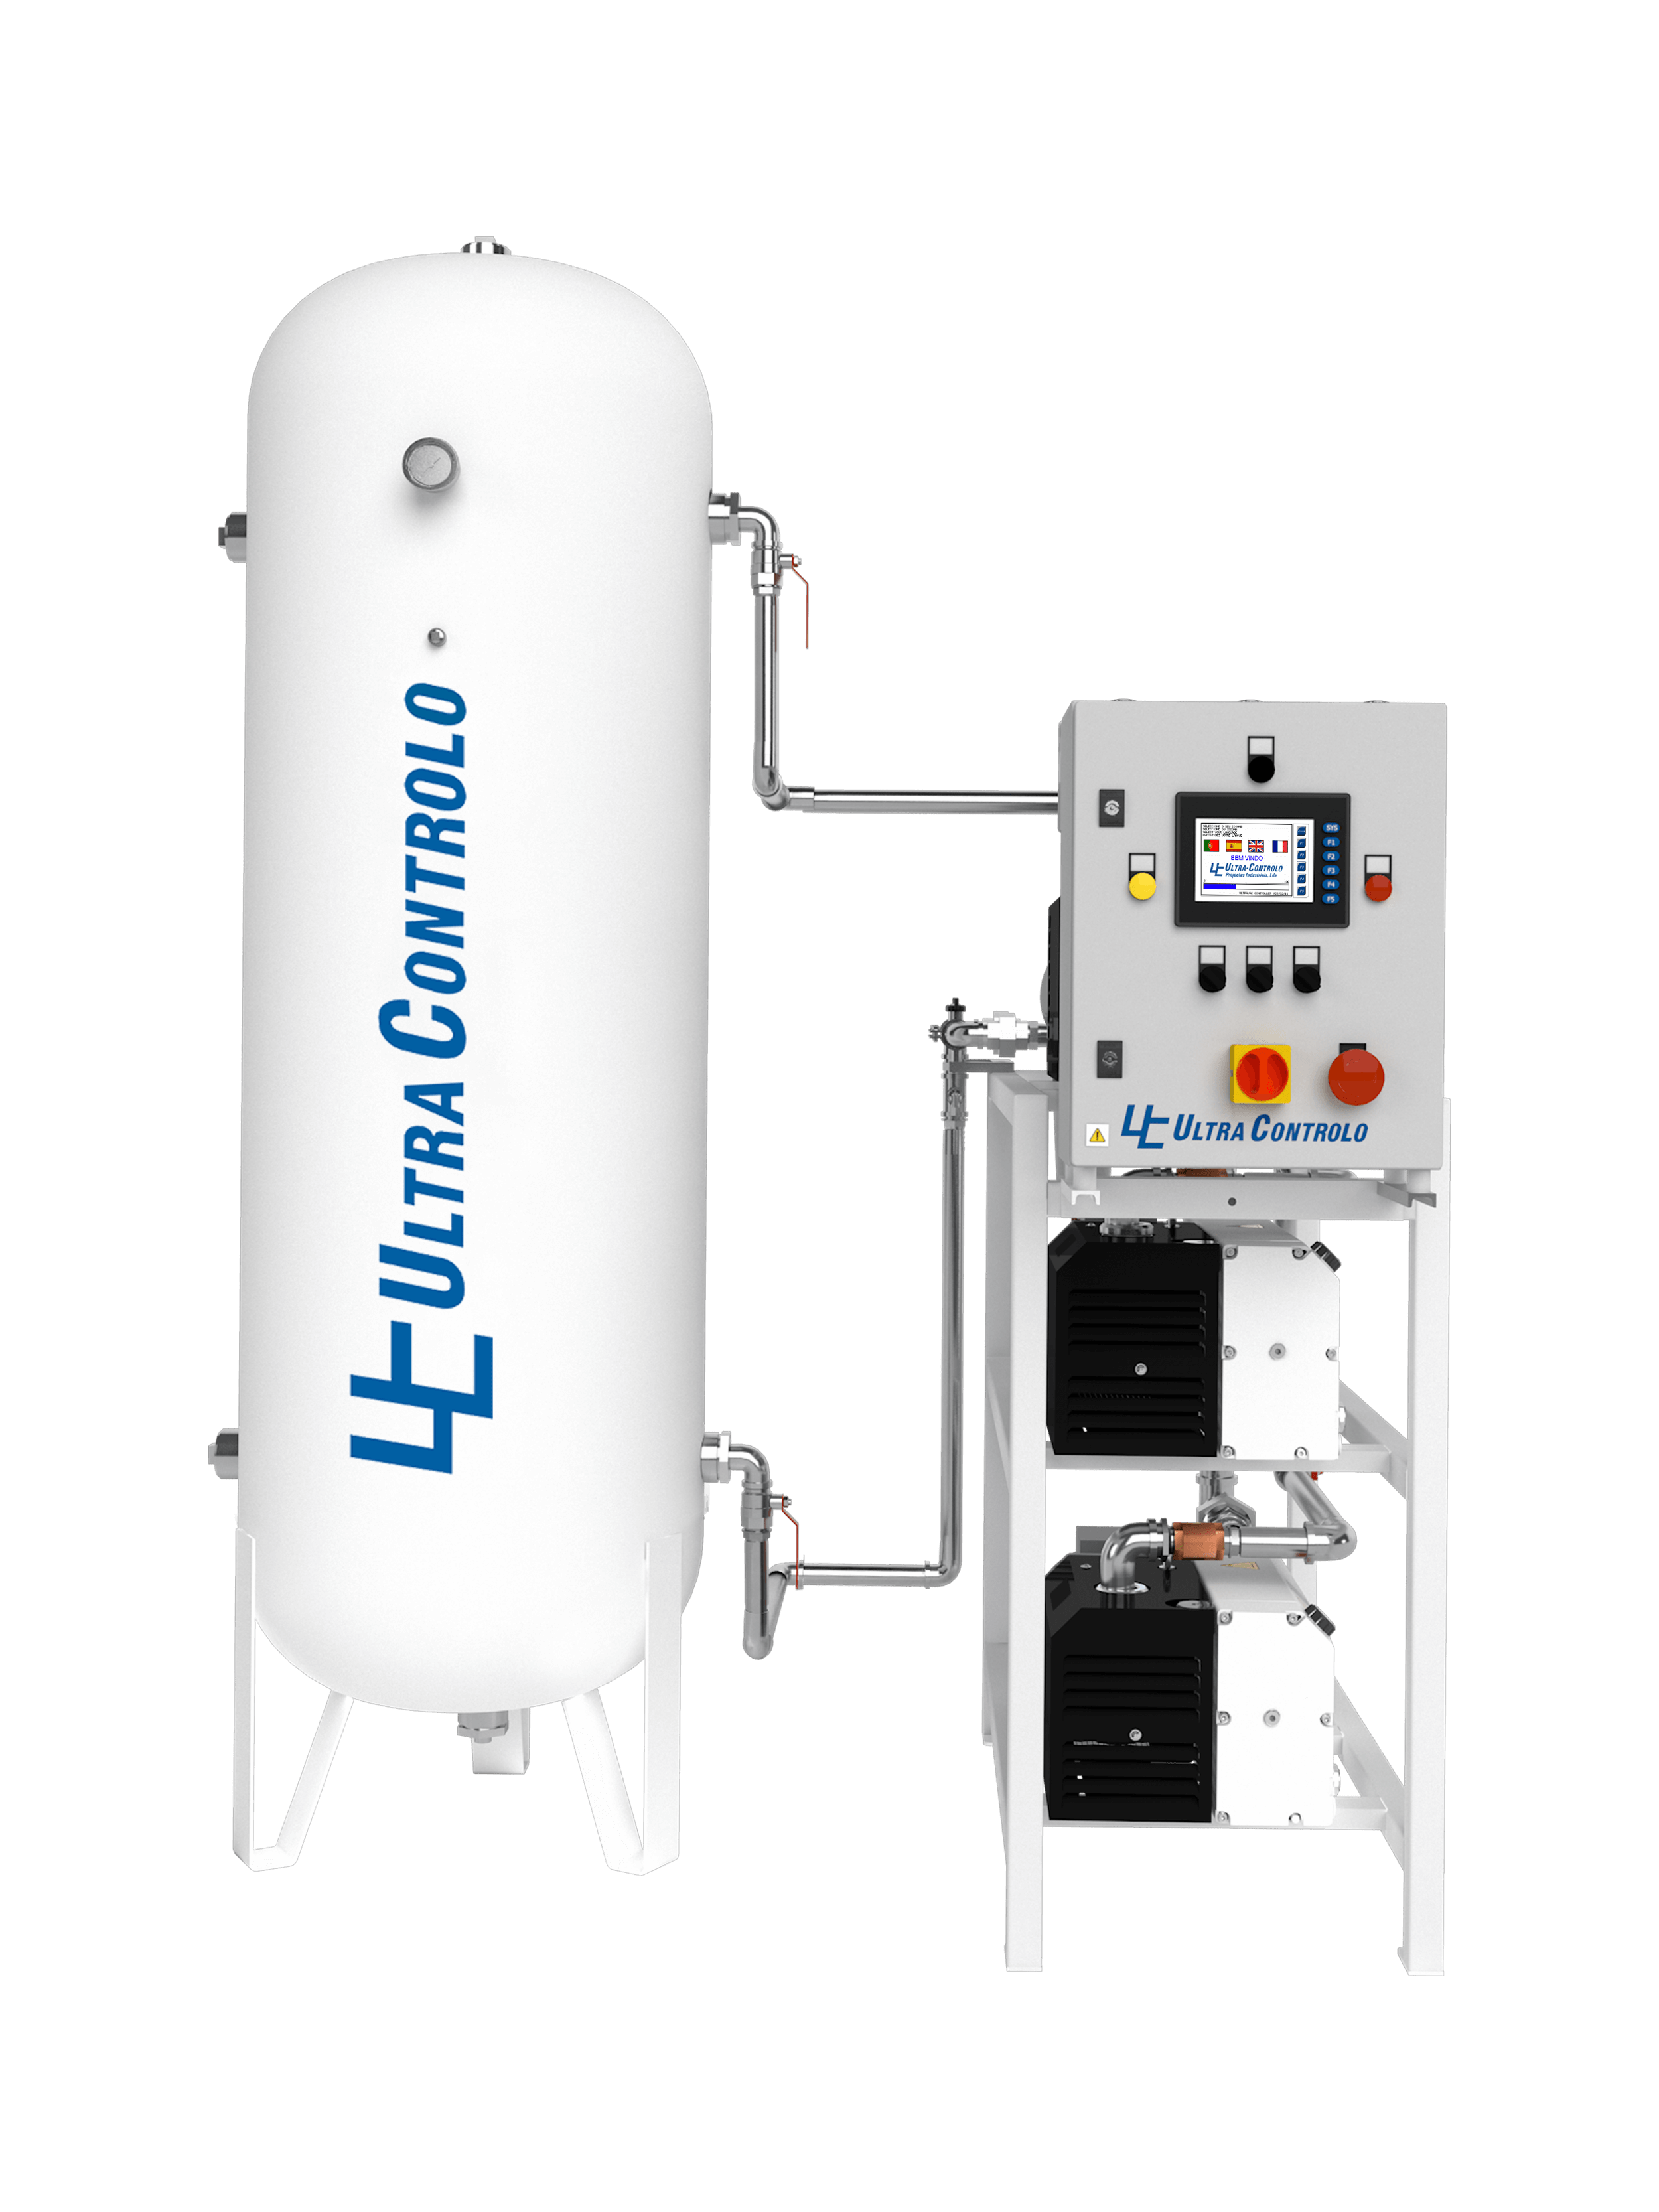 The ULTRAVAC plants aim to provide continuous medical vacuum for the hospital vacuum network. Our vacuum systems are fully automatic, very easy to install, and simple to operate and service.